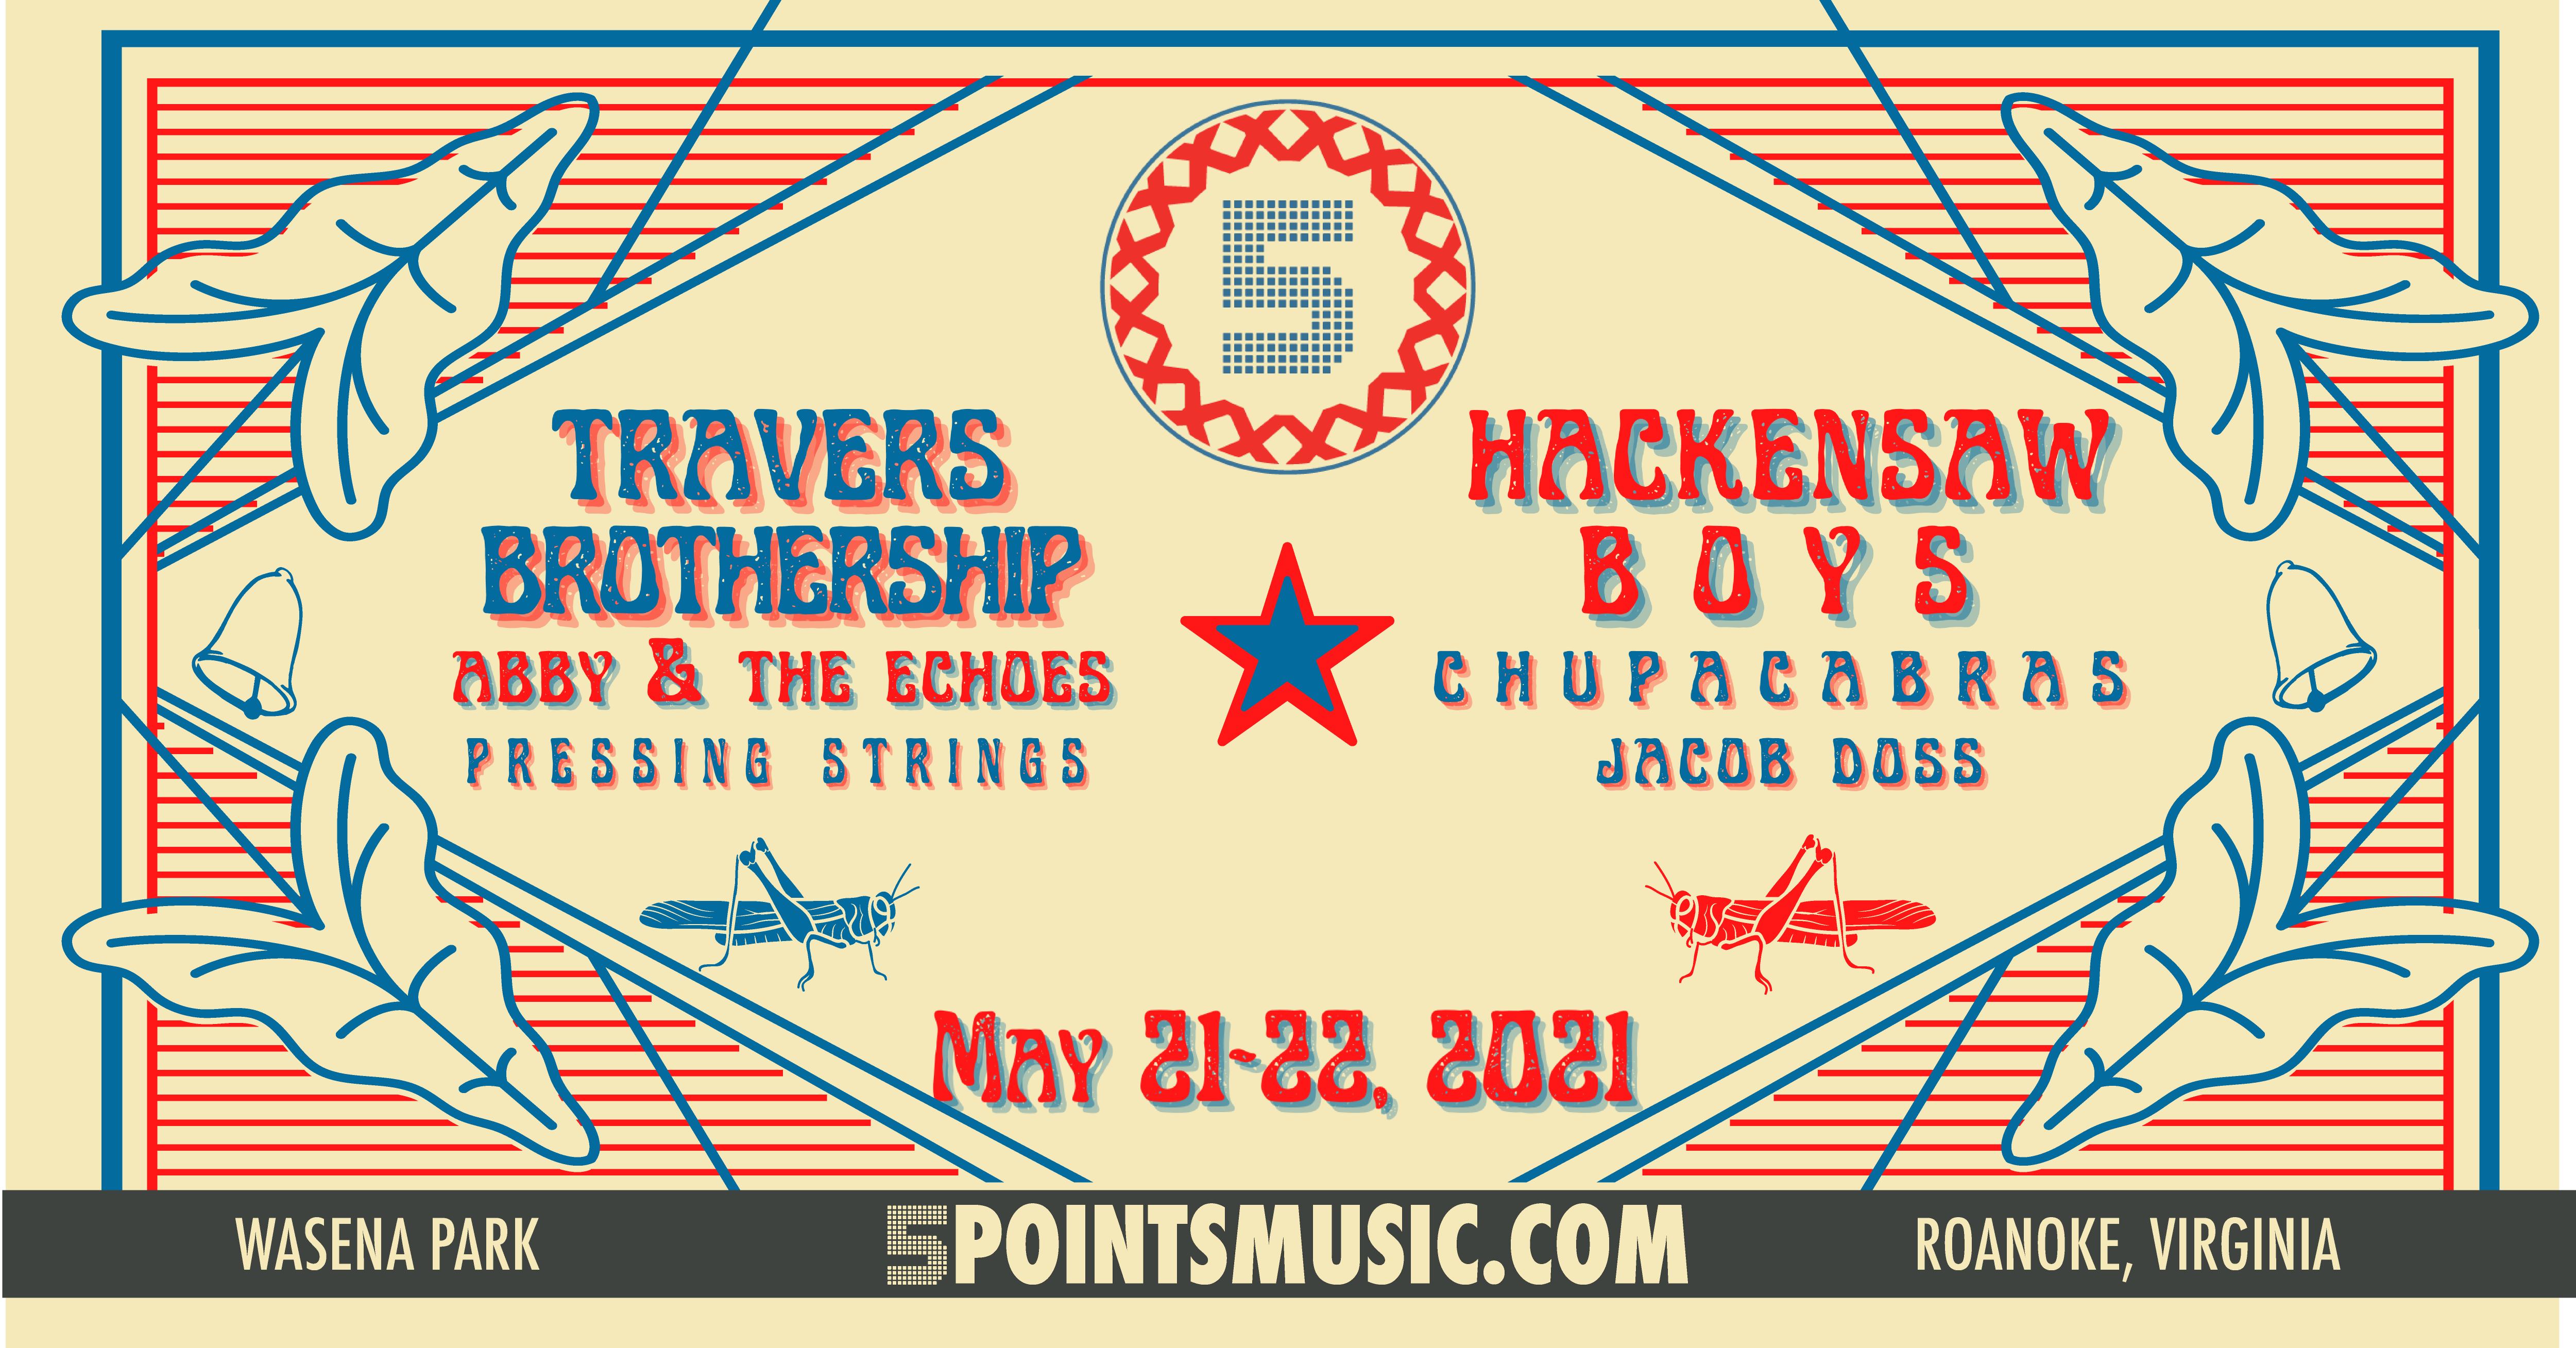 5 PTS Outdoors Concert Brother Travership and Hackensaw Boys